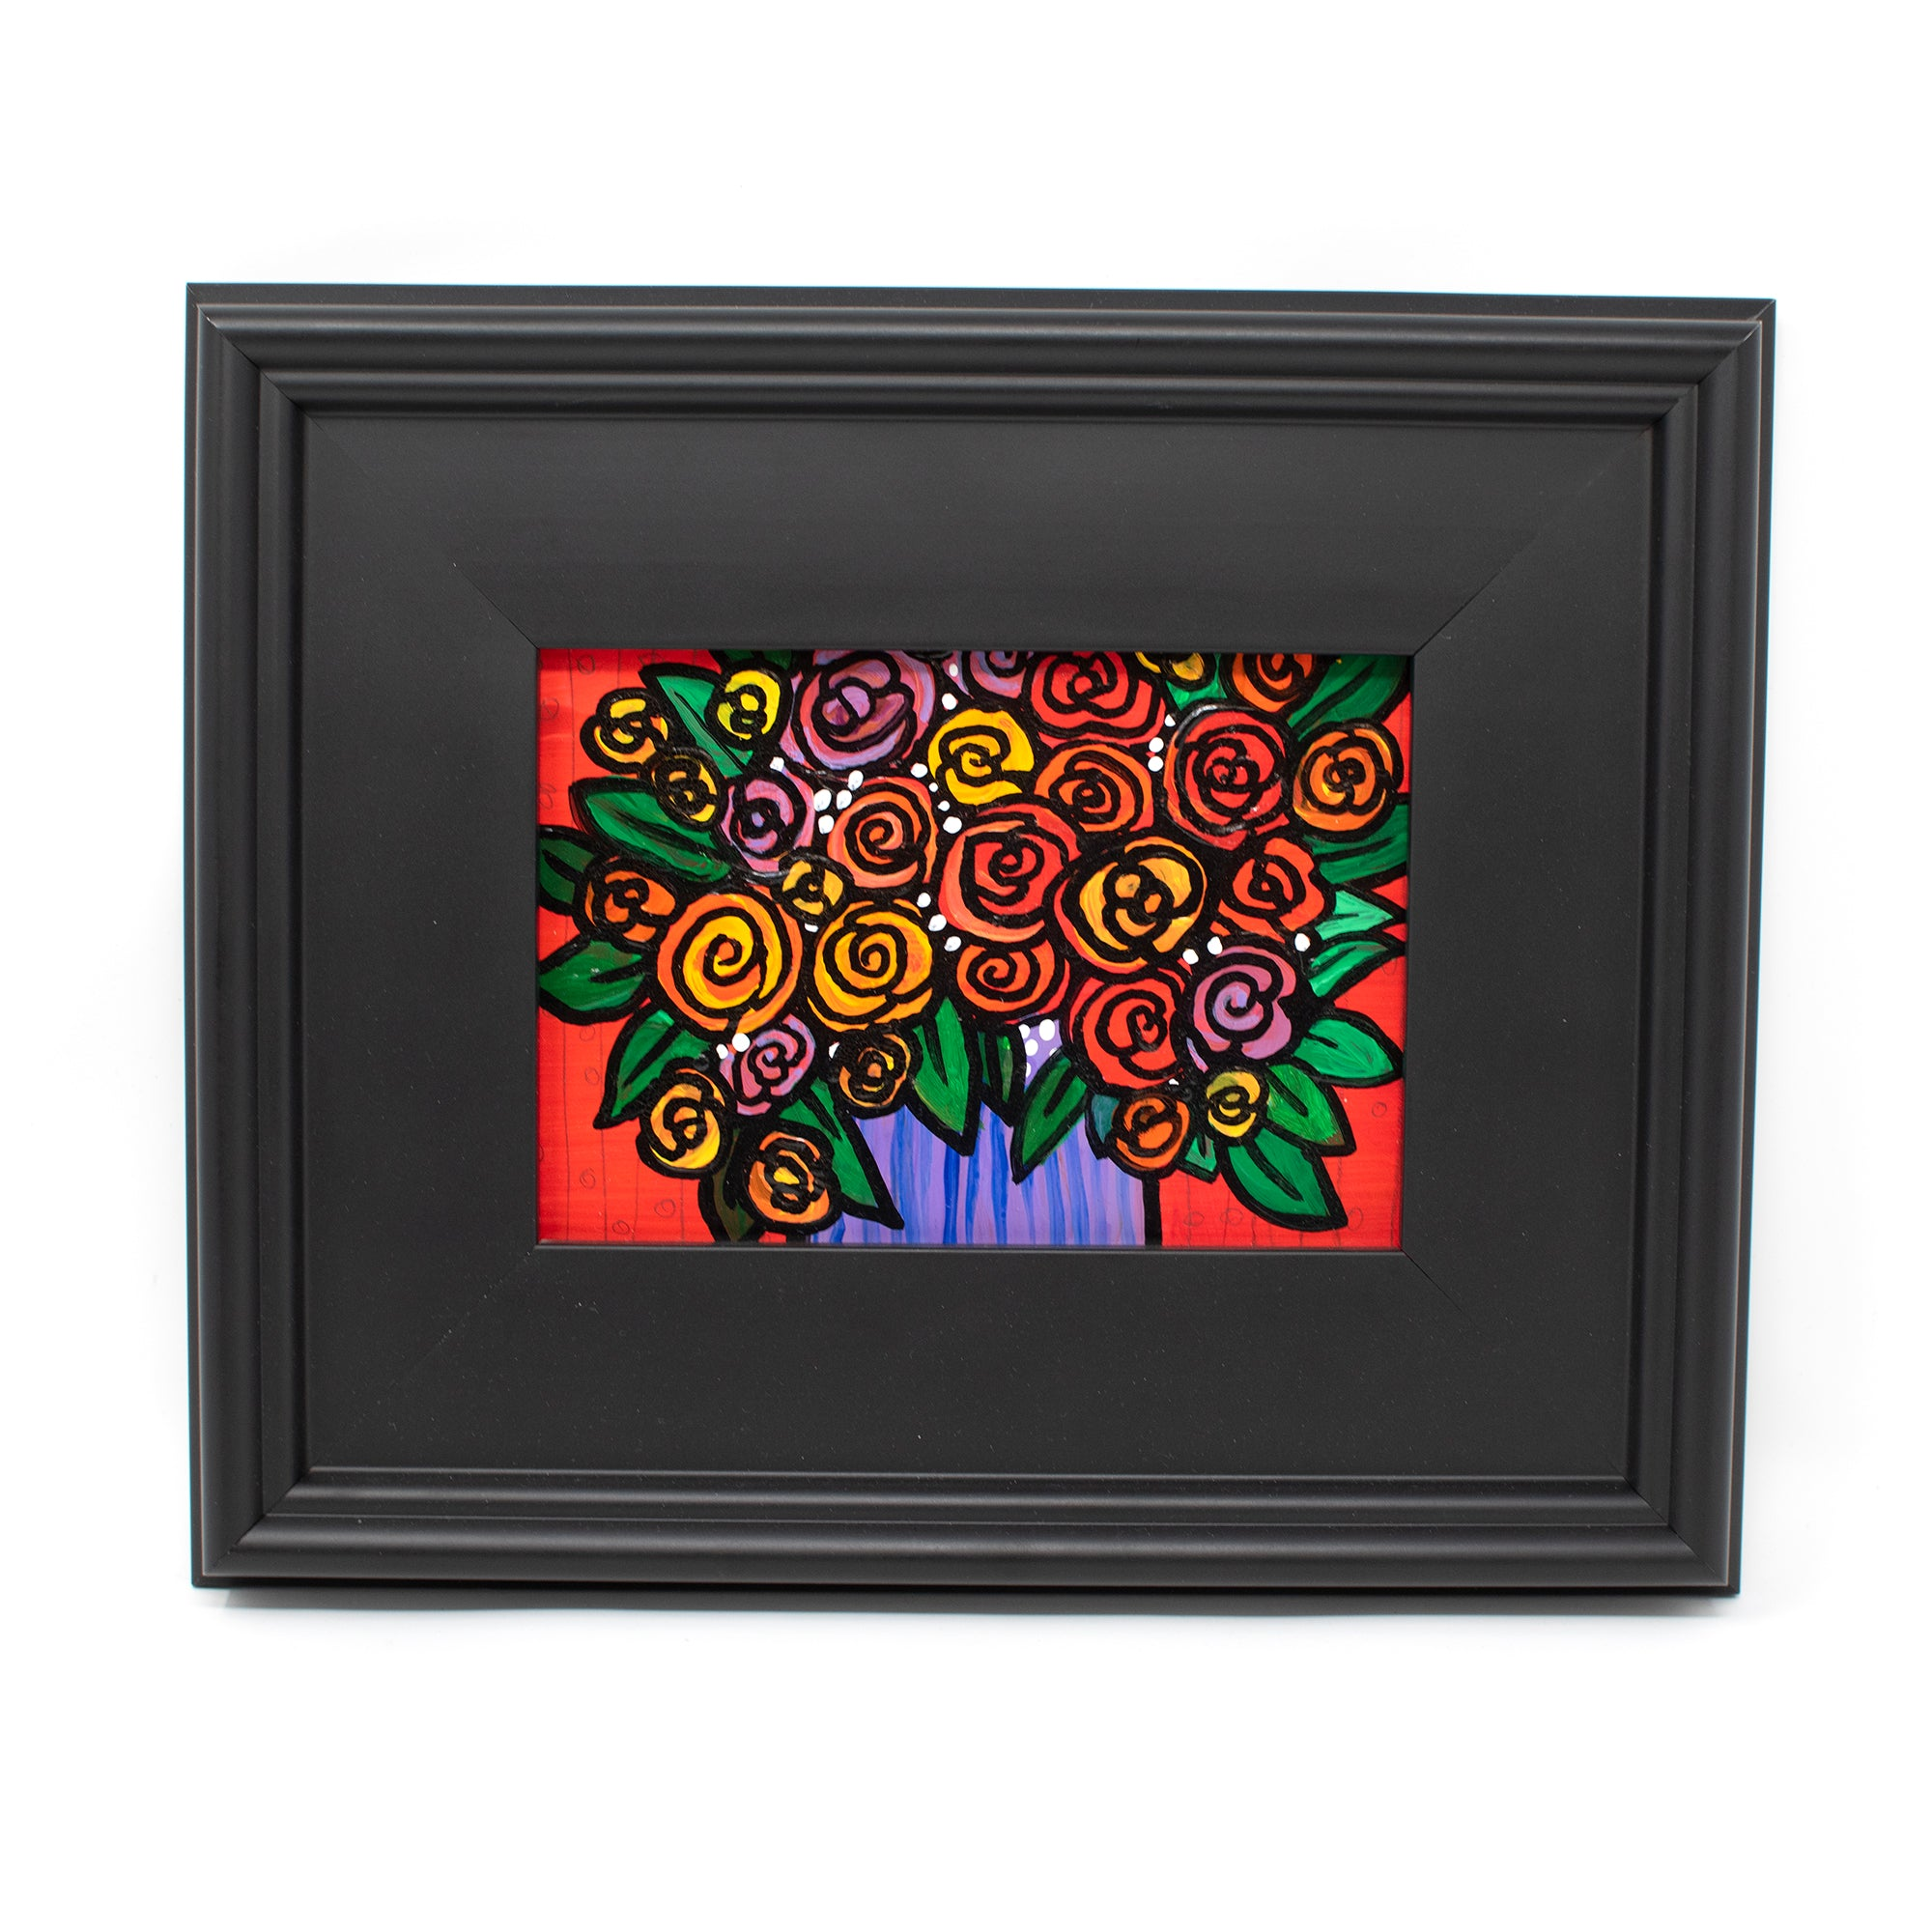 Whimsical Rose Painting in Black Frame